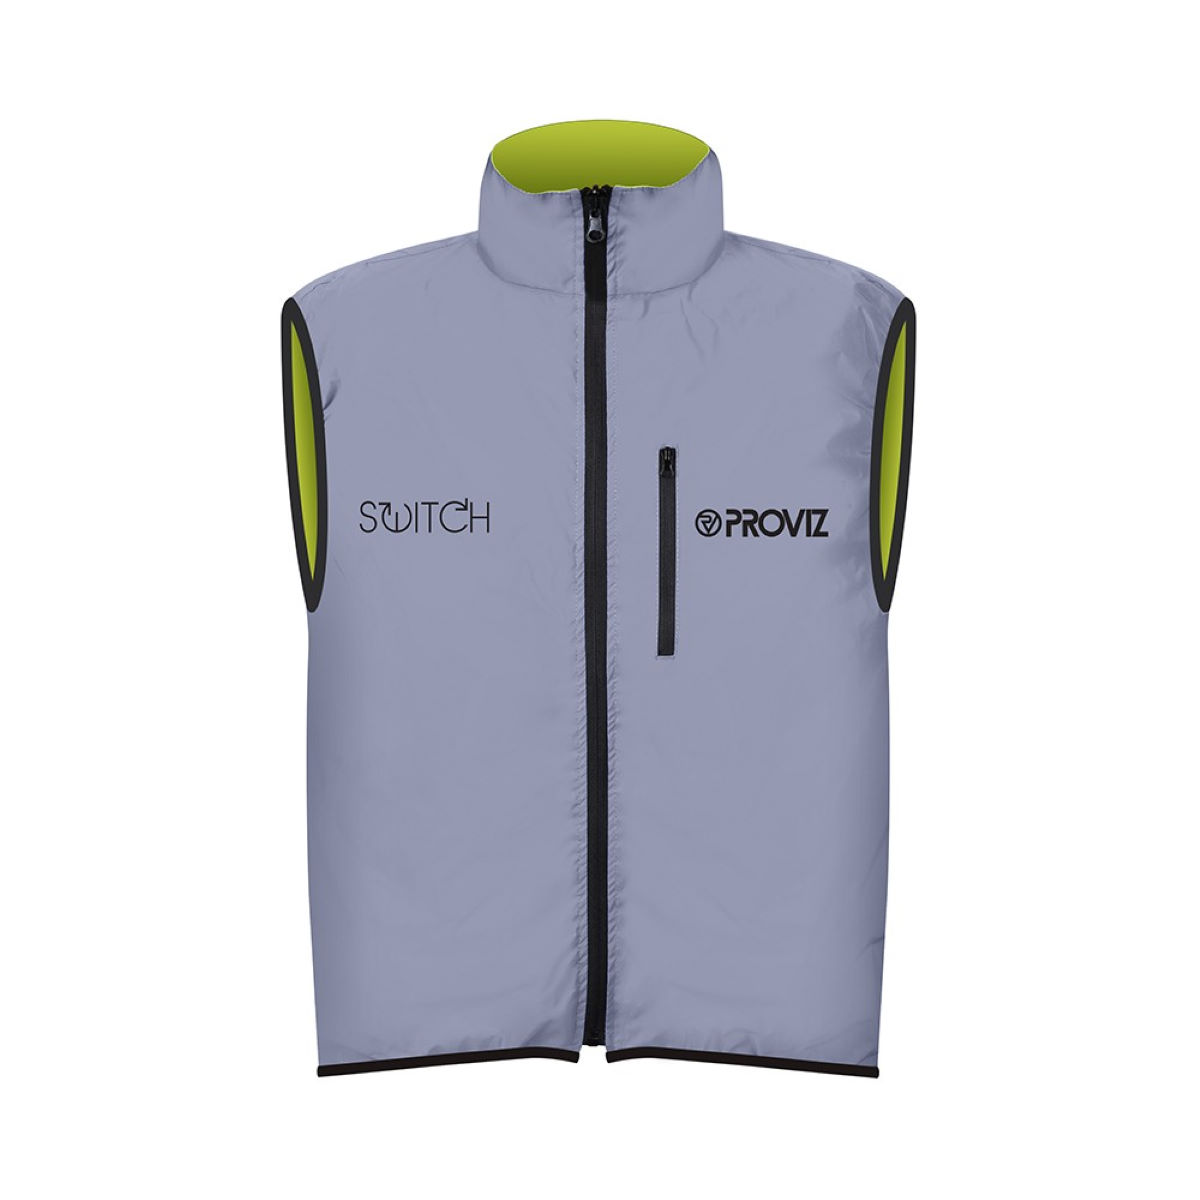 Gilet Proviz Switch (sans manches) - Medium Reflective/Yellow